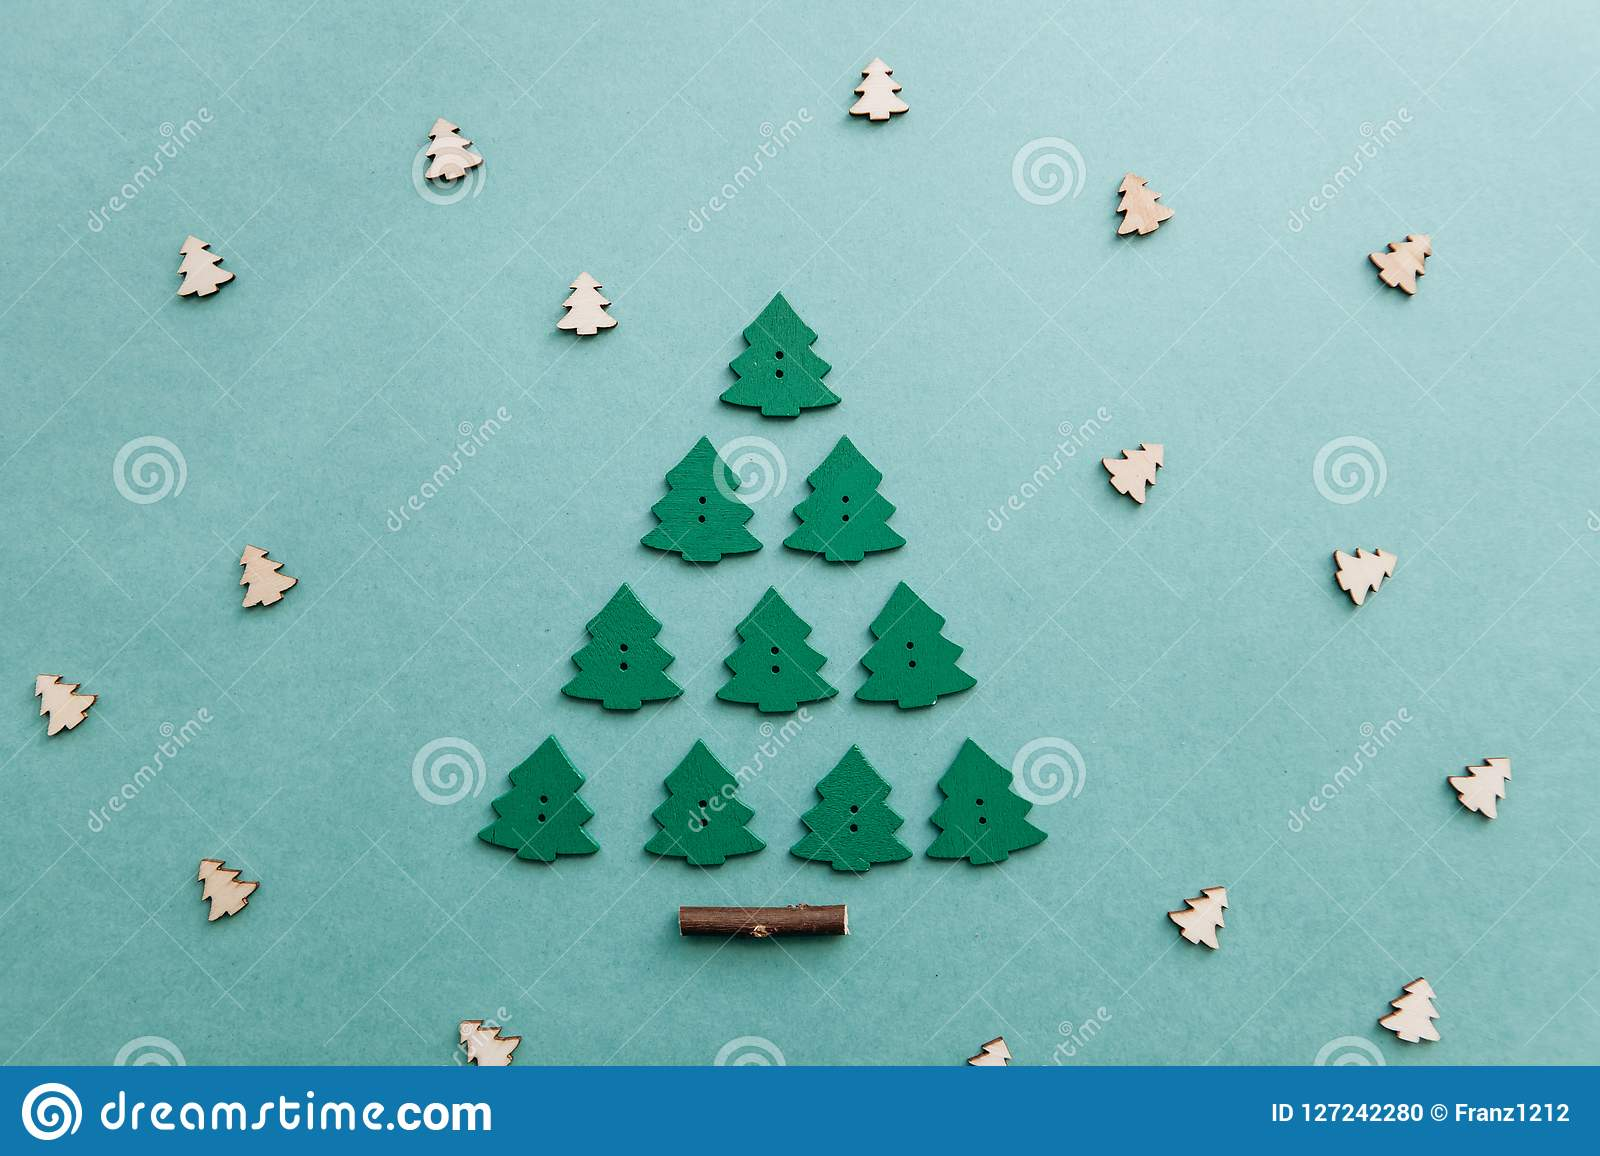 Christmas Tree From Other Small Wooden Christmas Trees Stock Photo Image Of Decoration Celebration 127242280